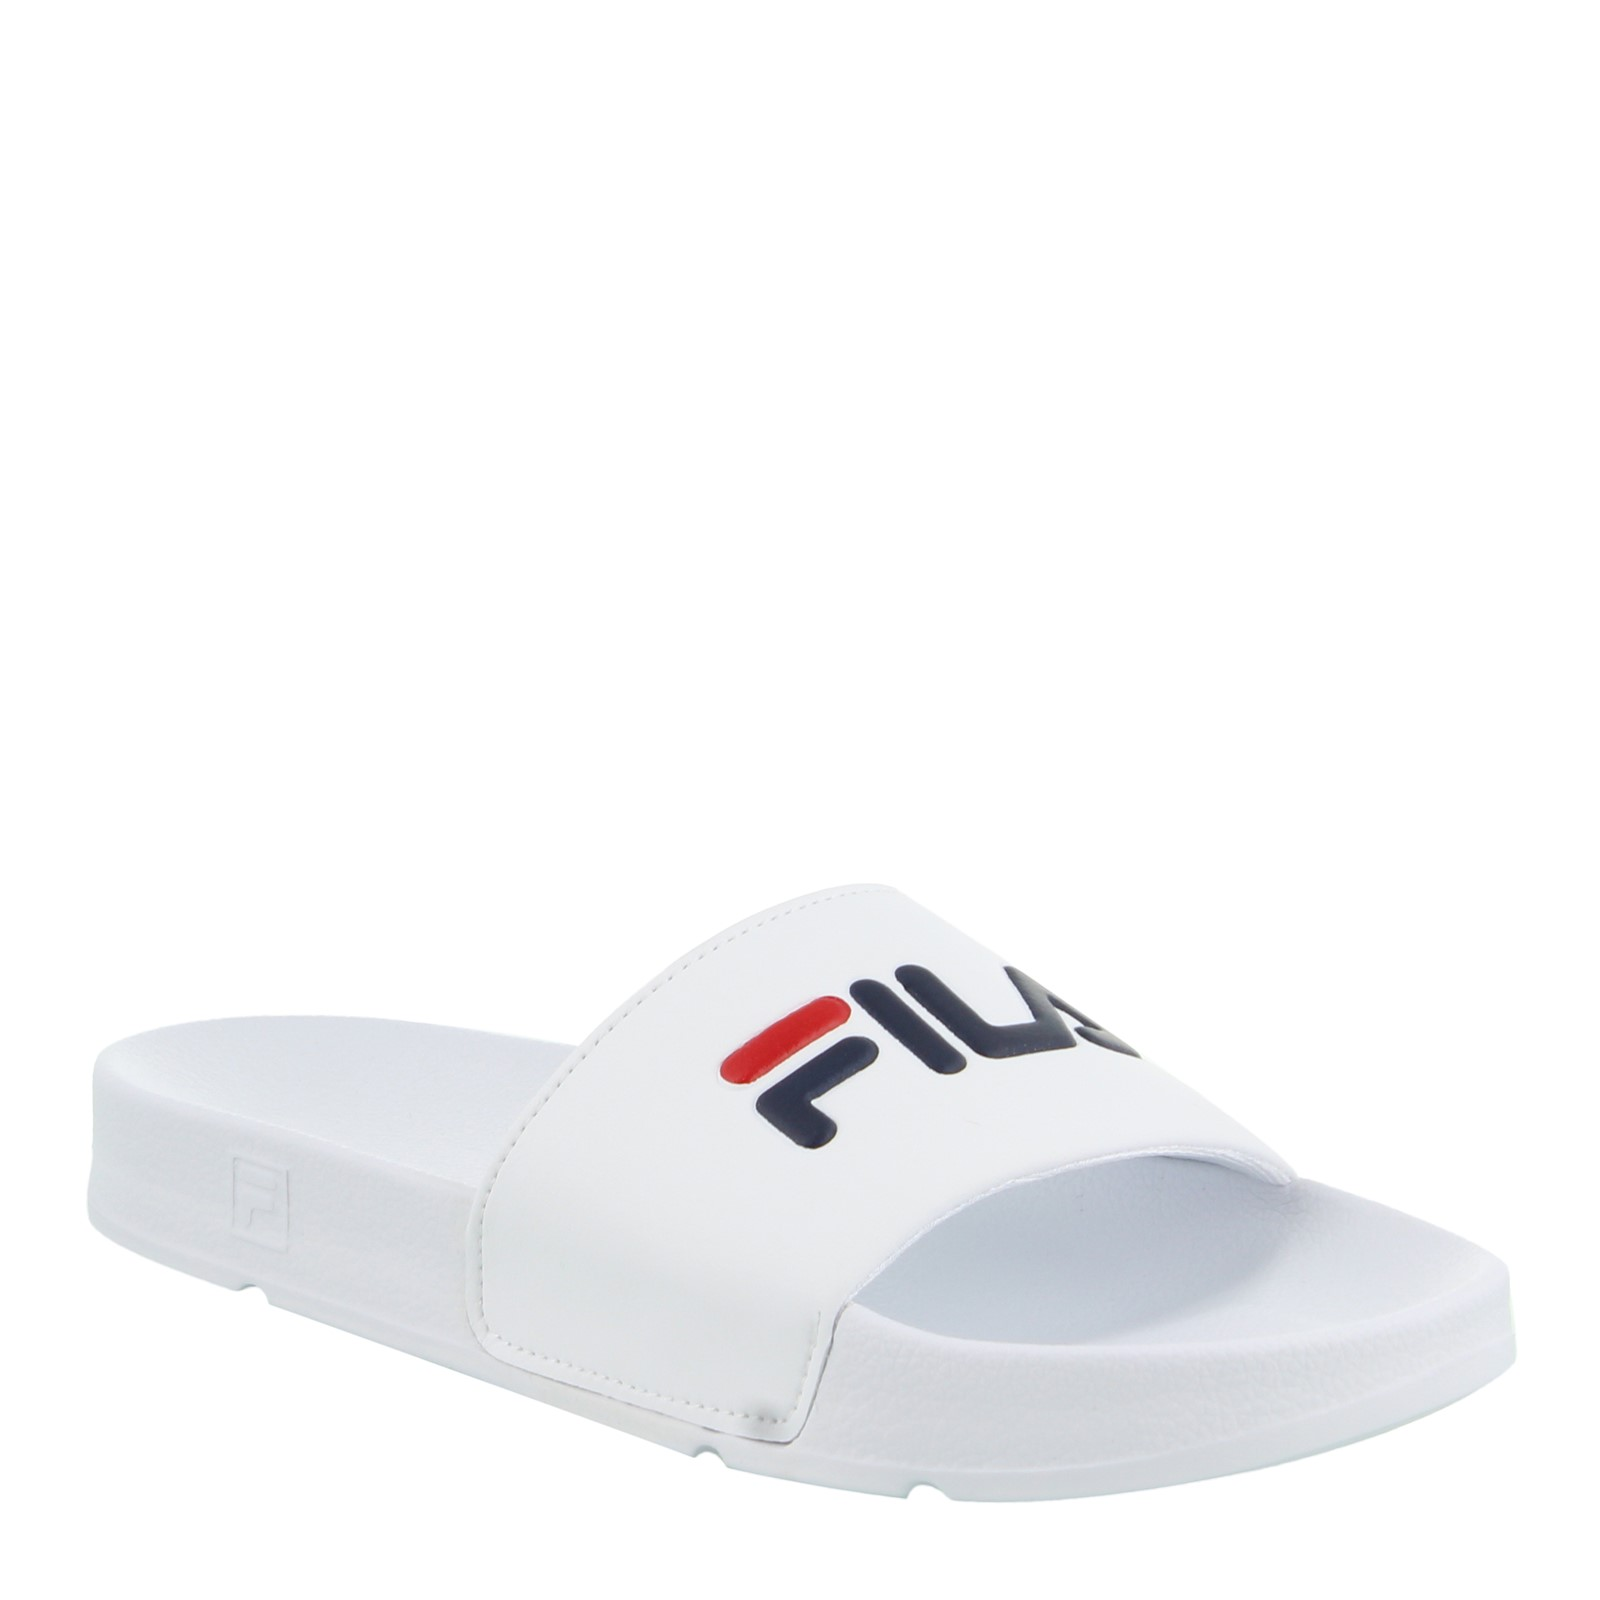 Women's Fila, Drifter Slide Sandals